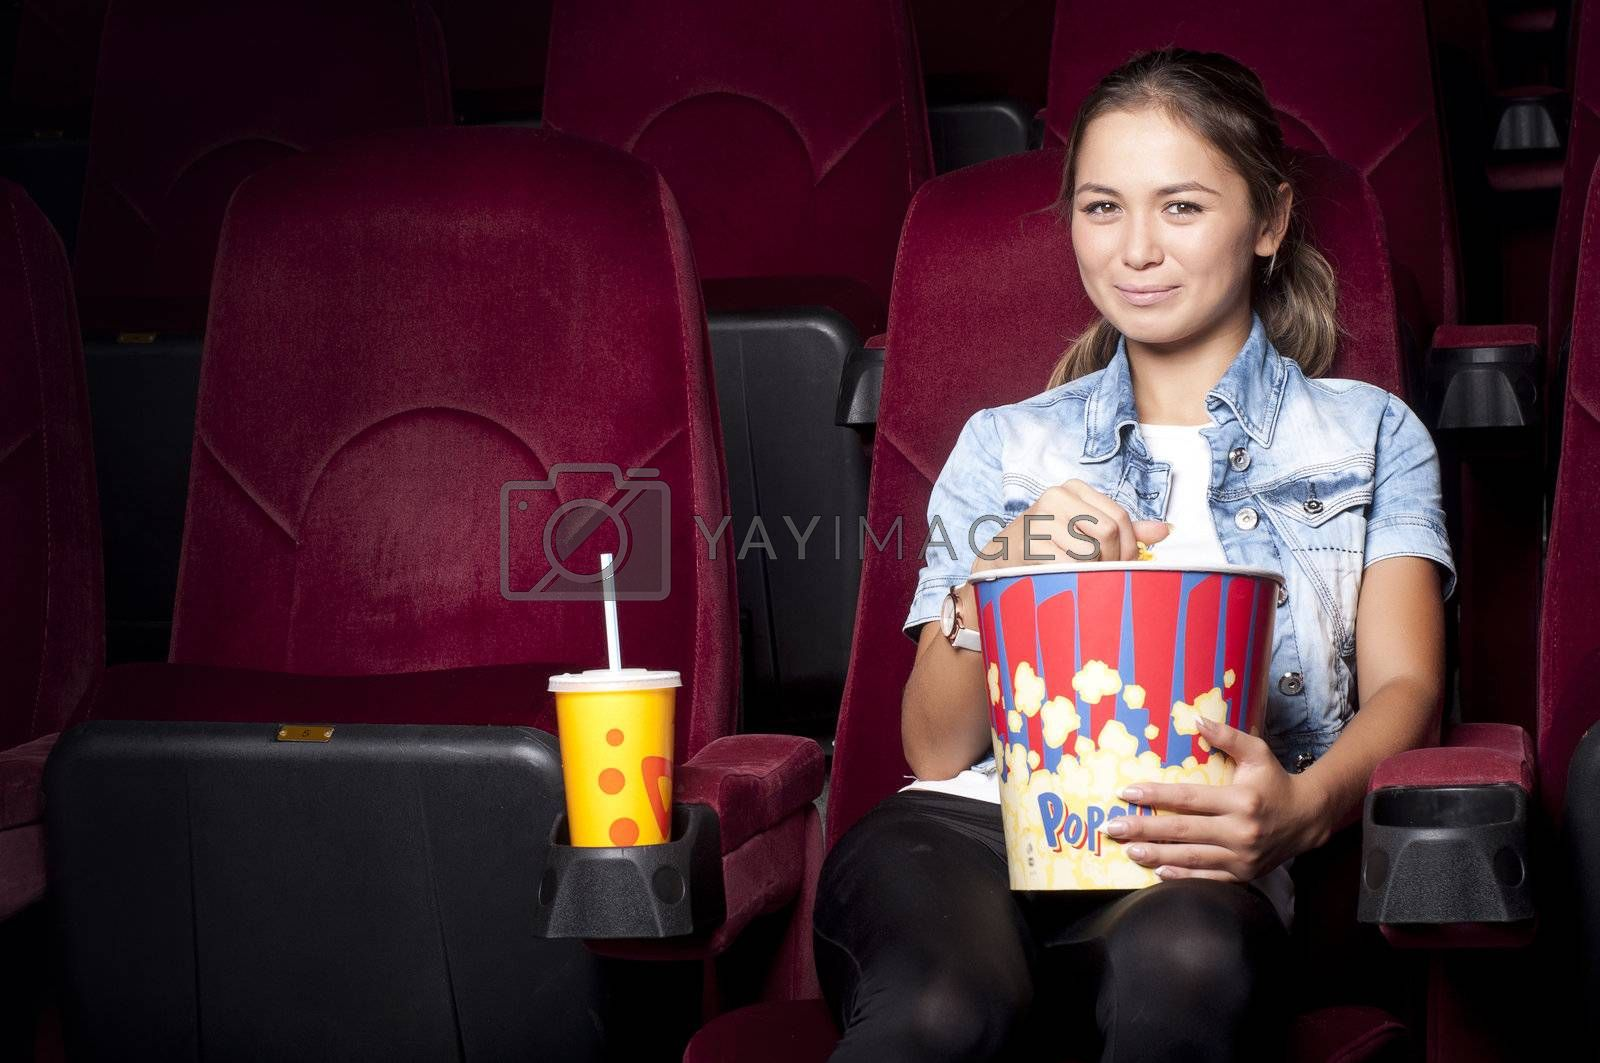 woman at the cinema eat popcorn by adam121